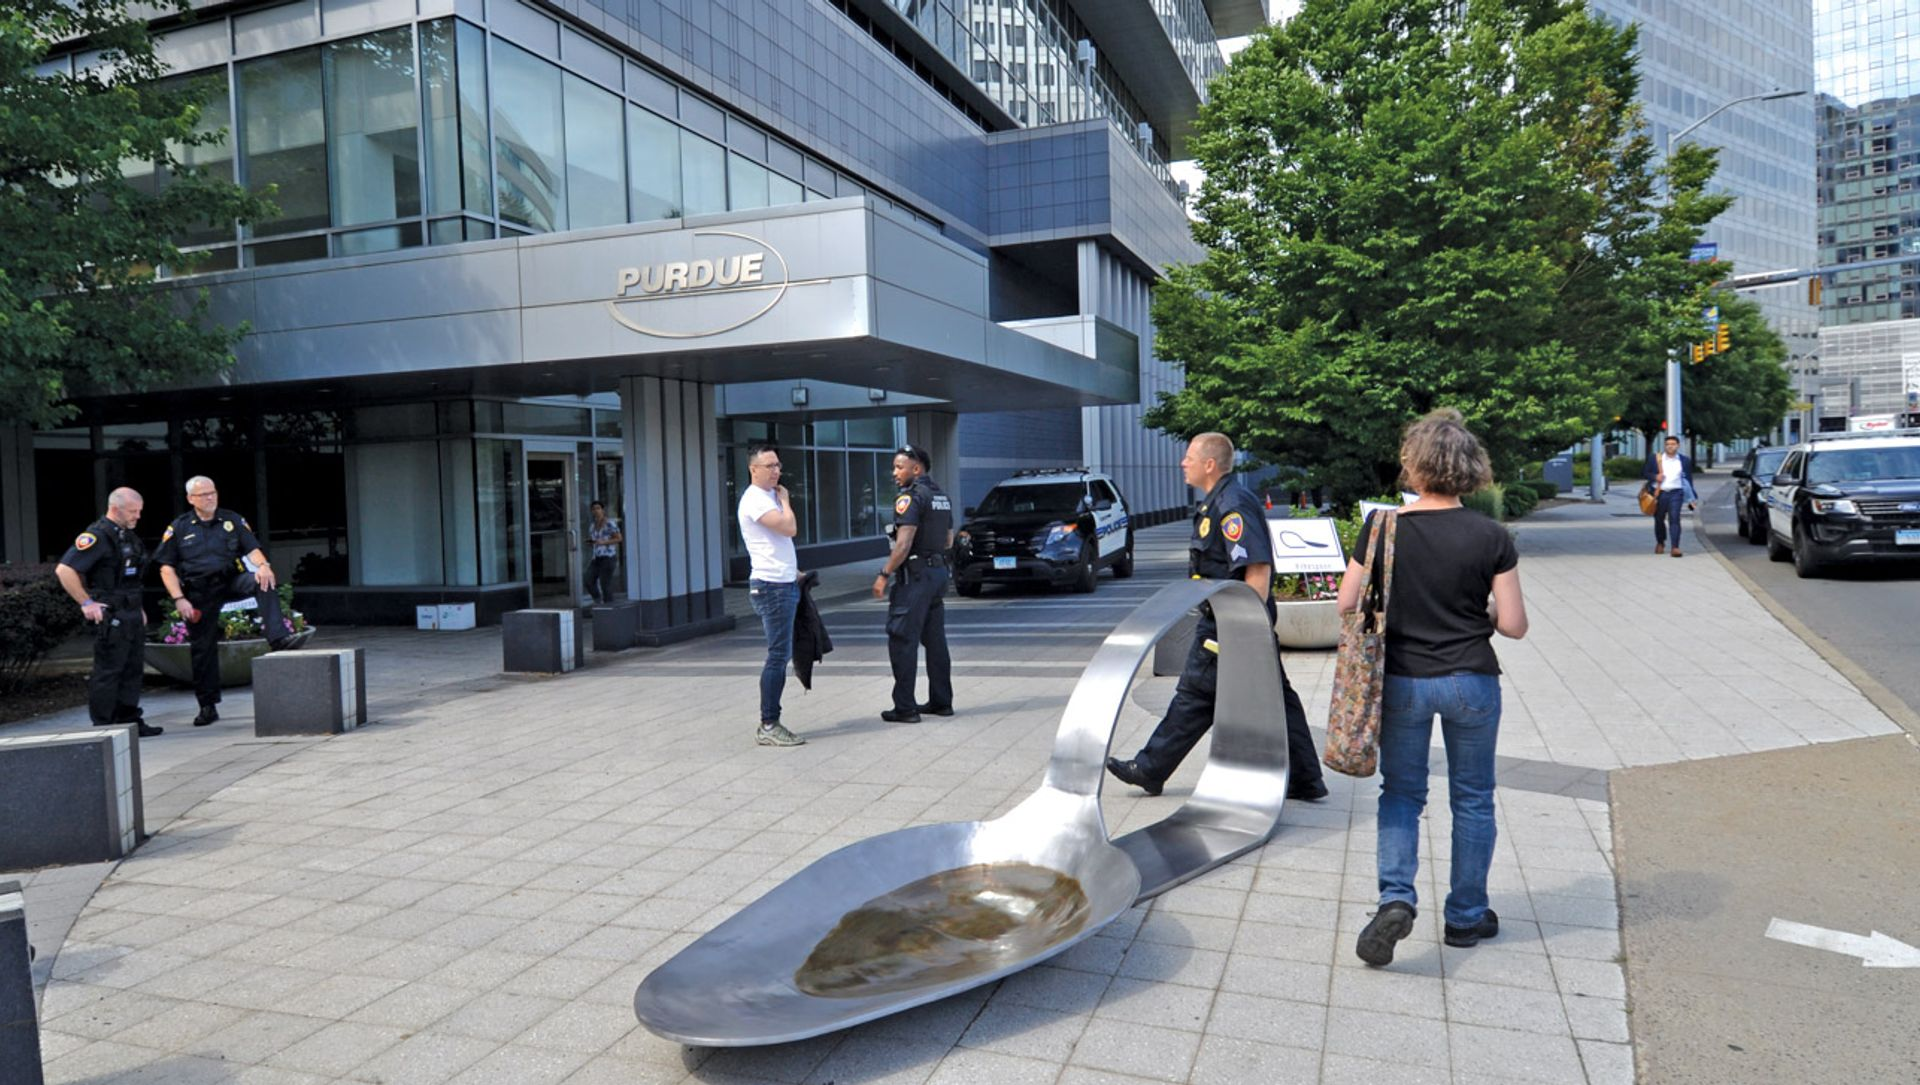 Domenic Esposito's opium-spoon sculpture was placed outside Purdue Pharma's offices by the gallery owner Fernando Luis Alvarez (in white shirt), who was later arrested for refusing to remove it Domenic Esposito